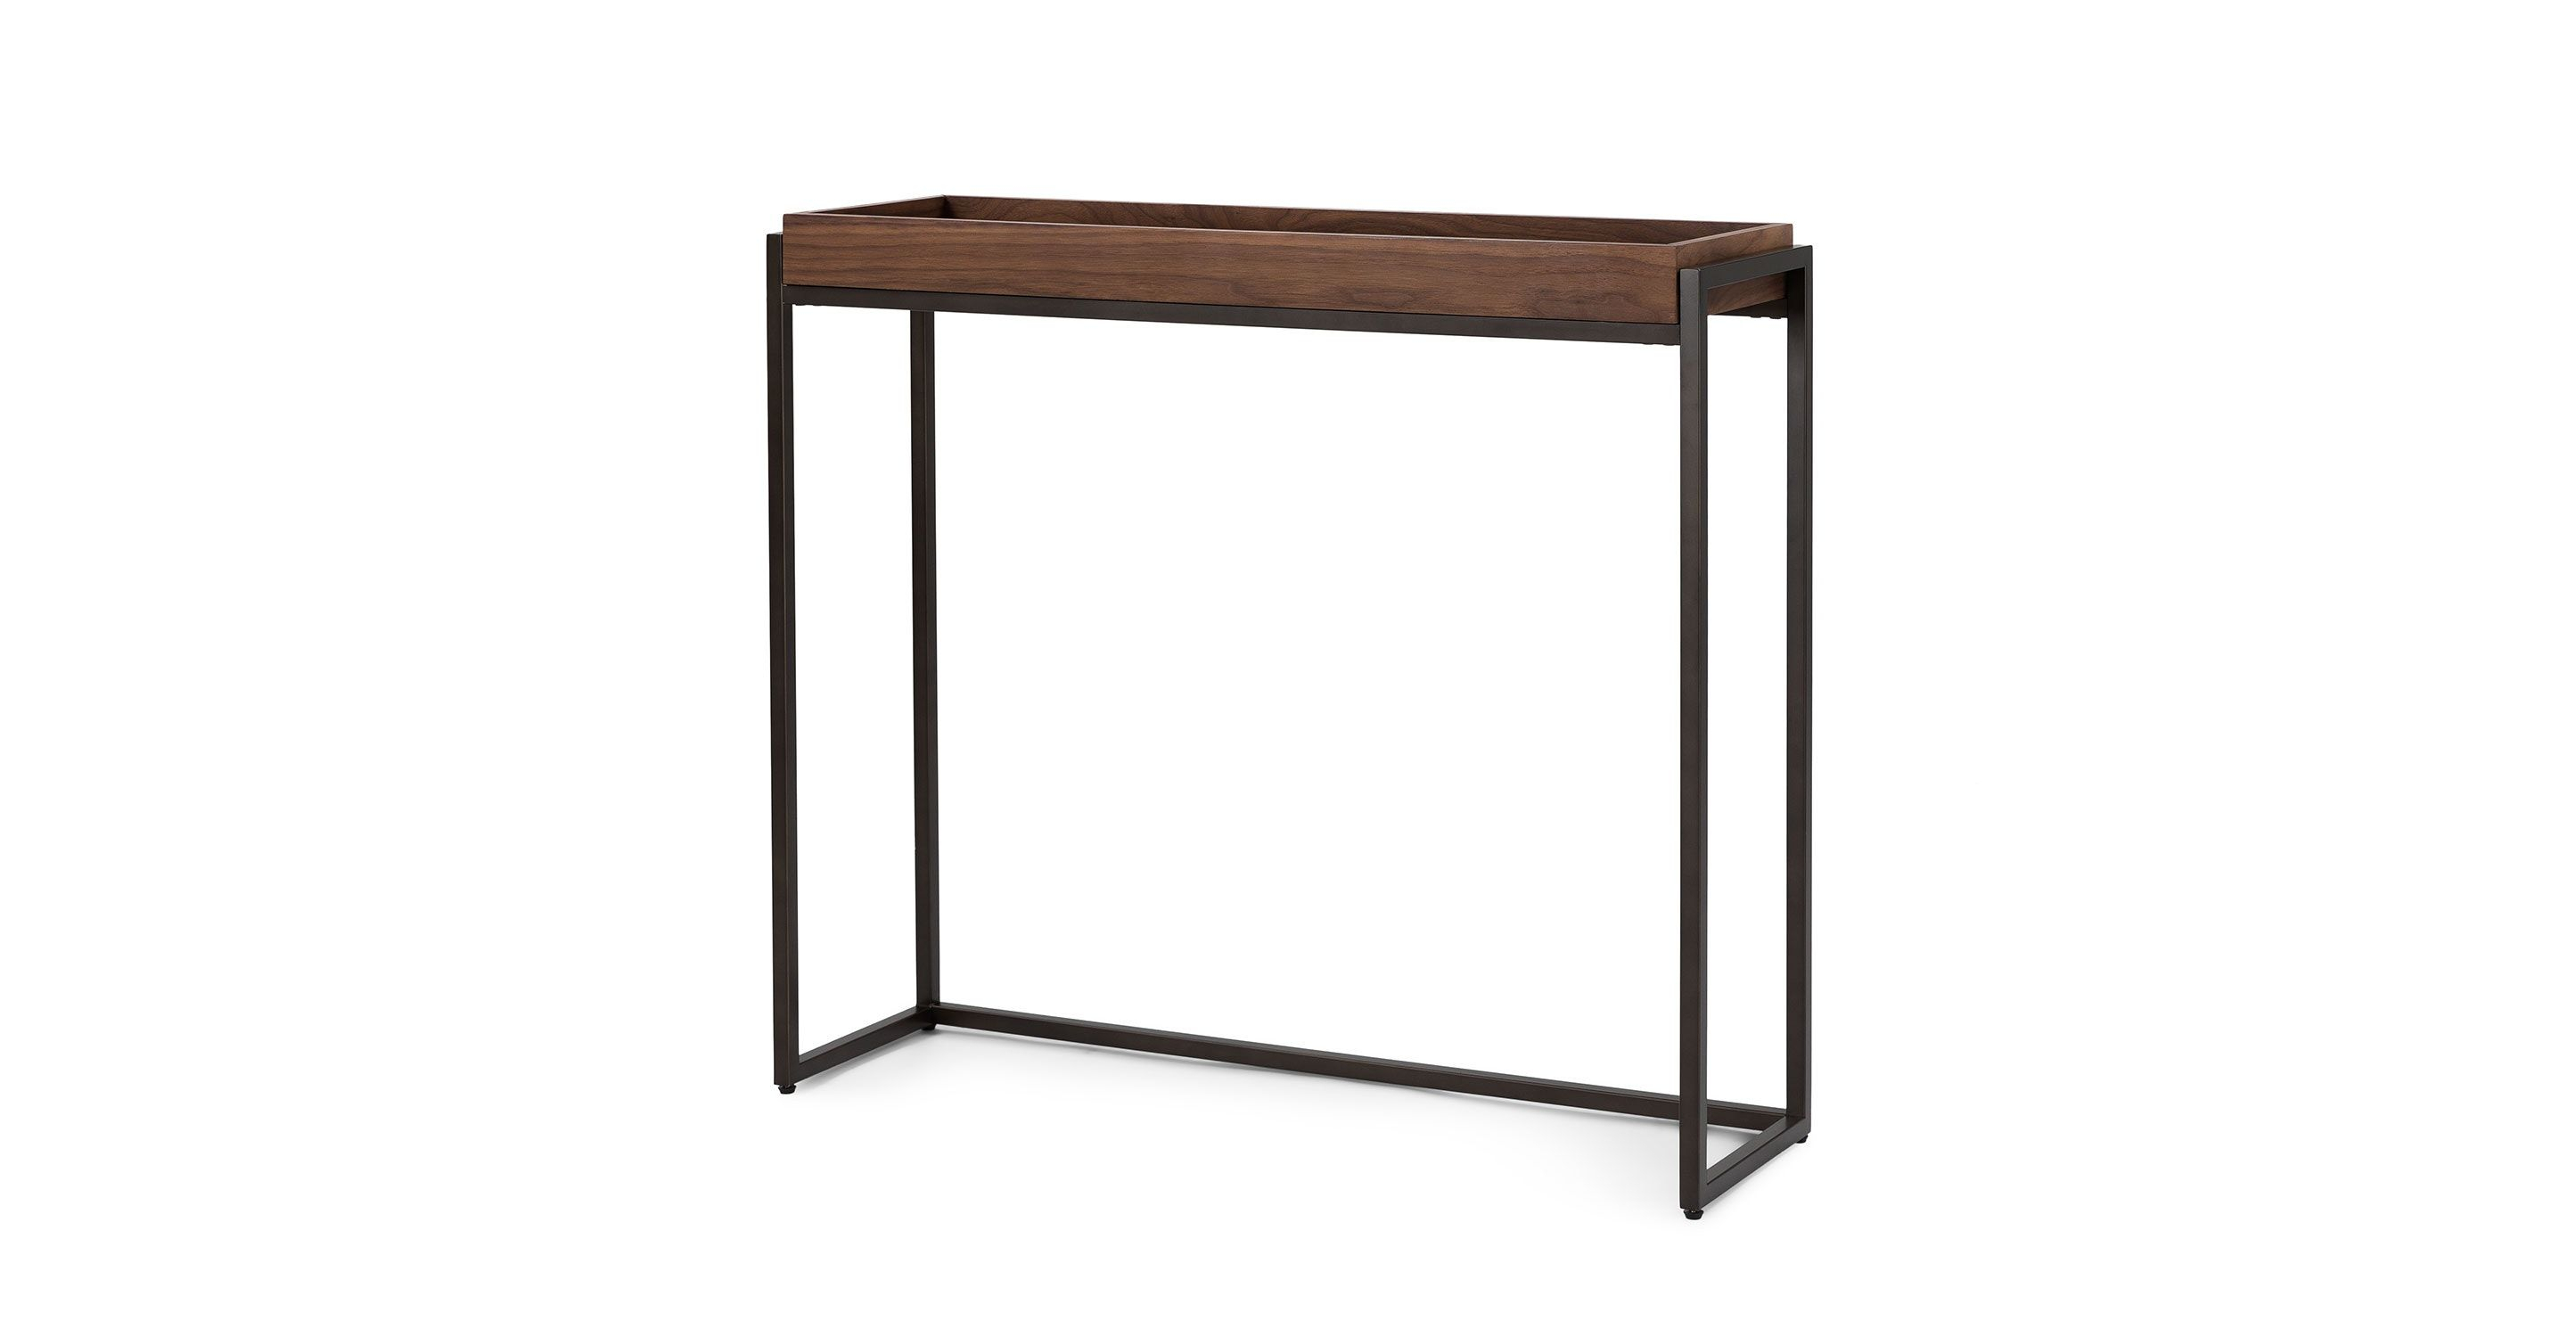 Oscuro Walnut Console intended for Parsons Walnut Top & Brass Base 48X16 Console Tables (Image 21 of 30)